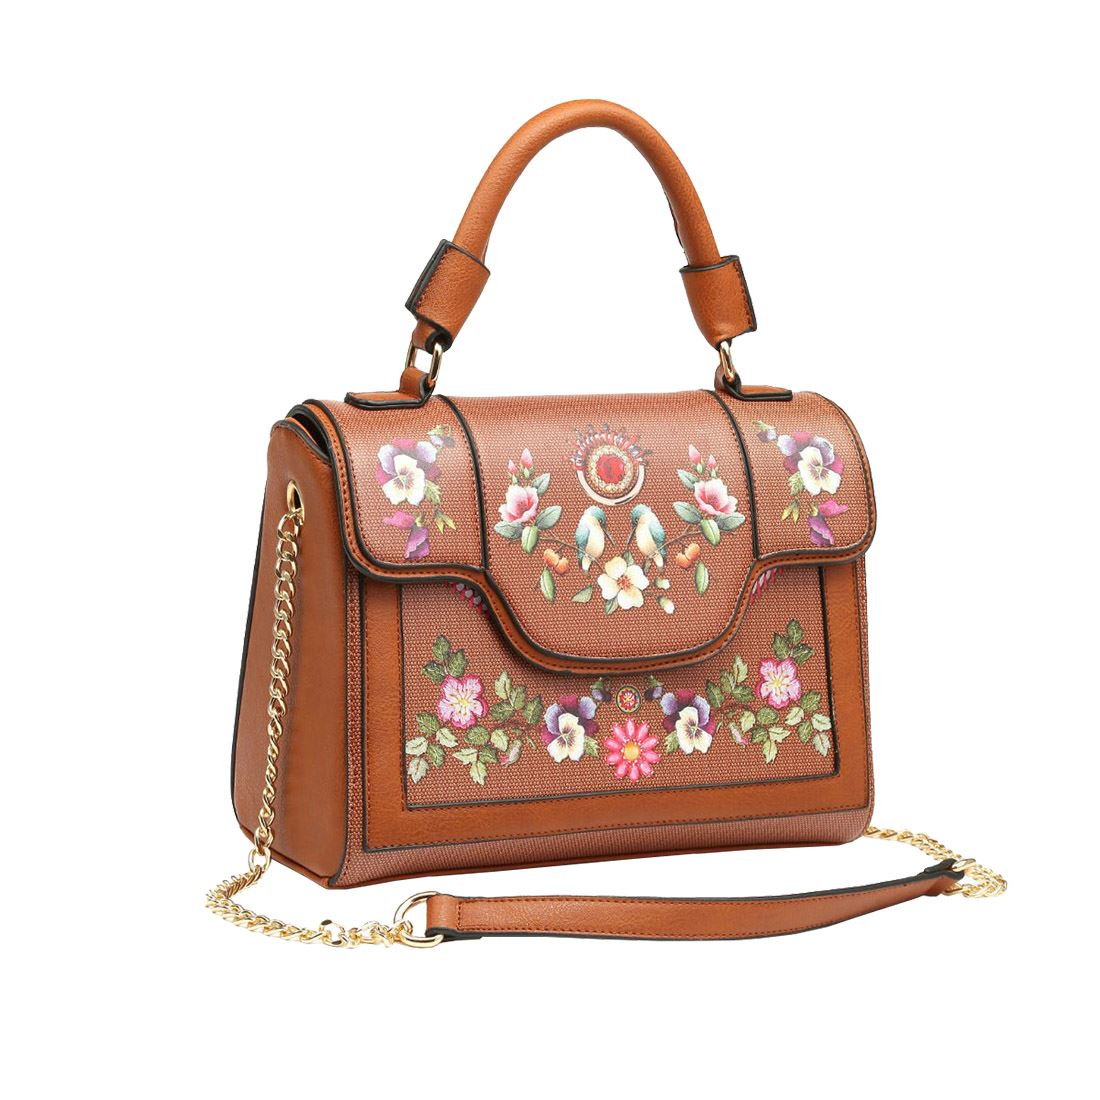 New-Synthetic-Leather-Kingfisher-Flower-Print-Ladies-Tote-Bag-Handbag thumbnail 4